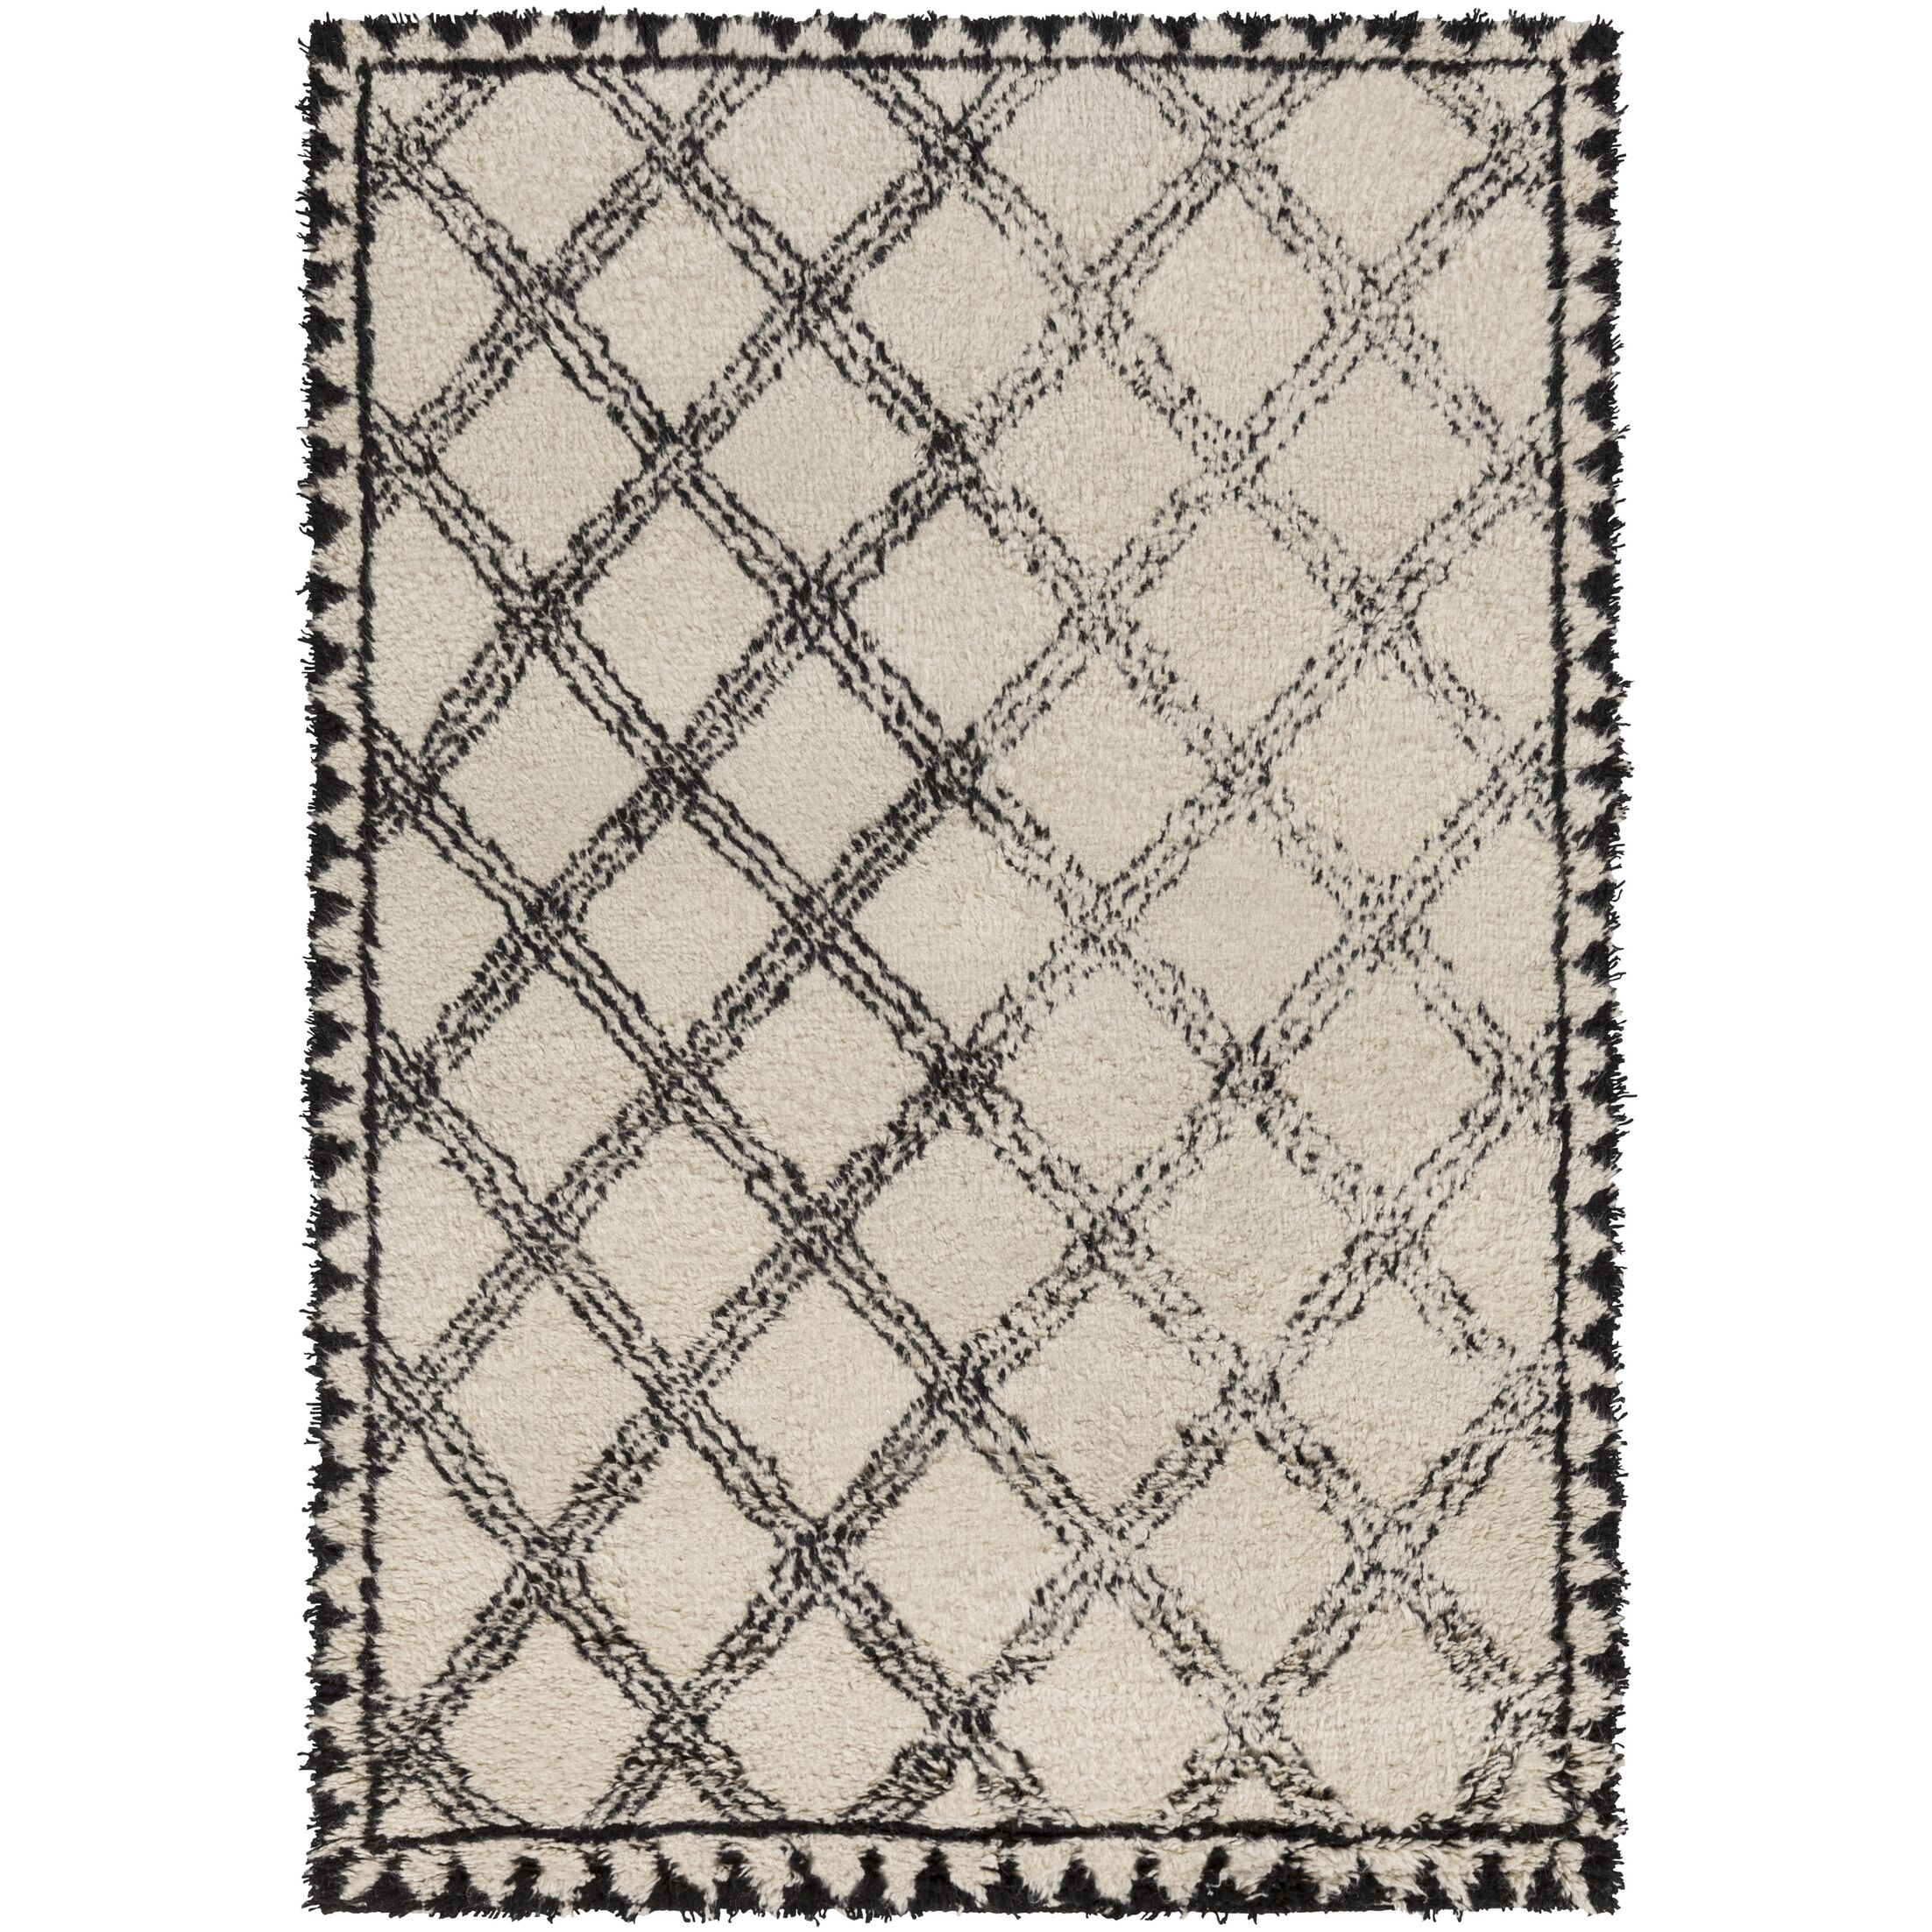 Riad Hand-Knotted Black/Ivory Area Rug Rug Size: Rectangle 6' x 9'